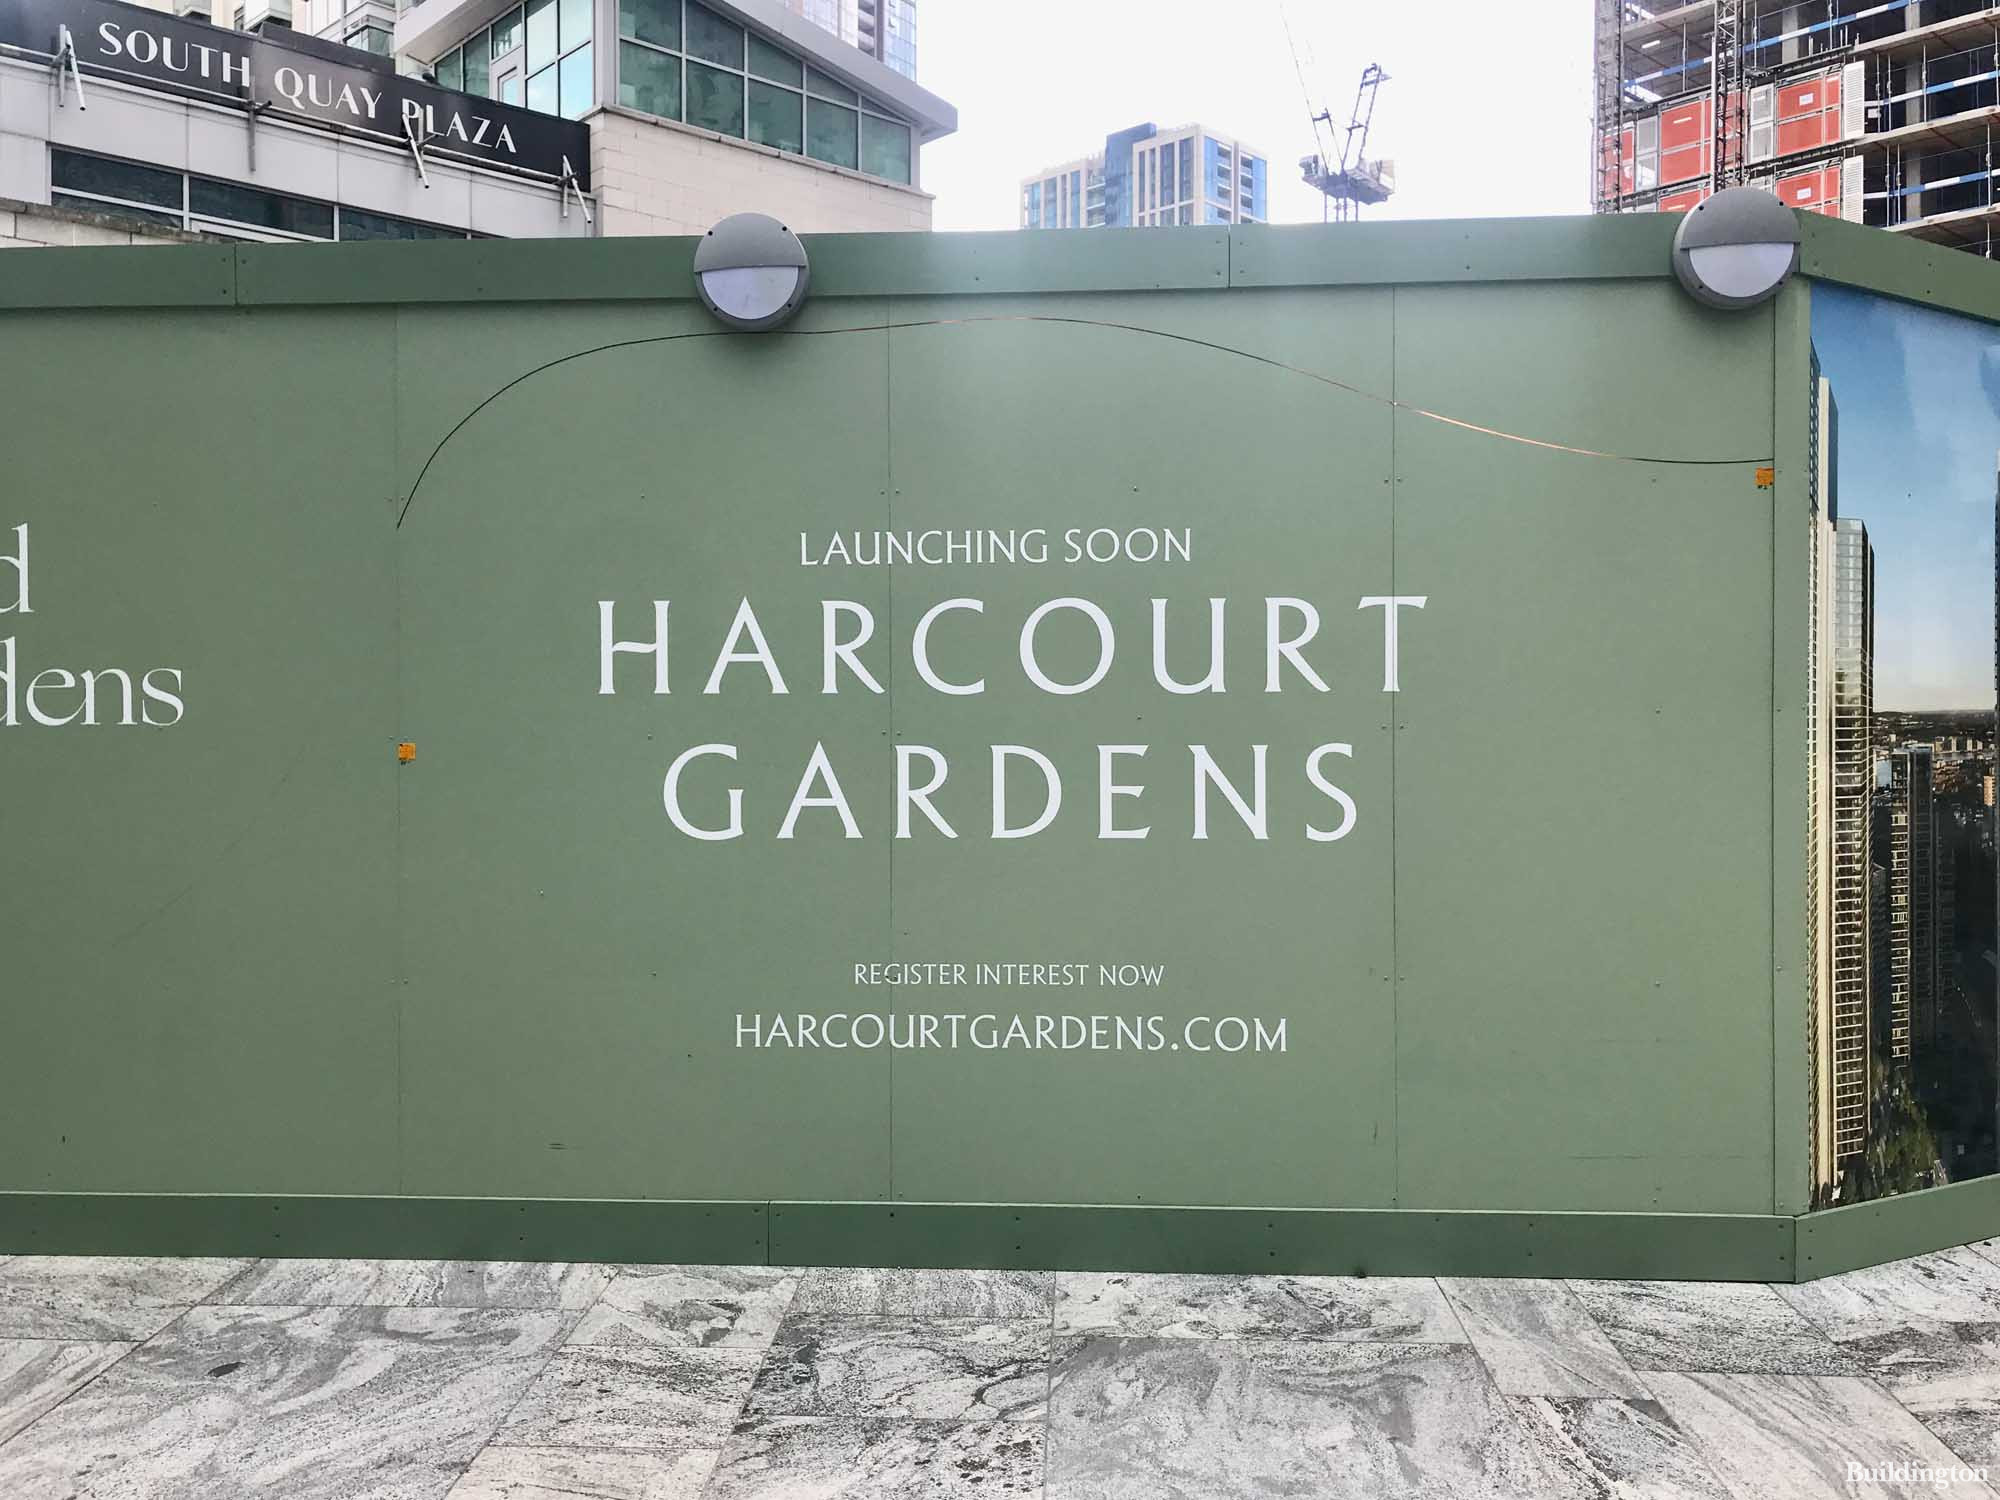 Harcourt Gardens Launching Soon at South Quay Plaza hoarding on site in summer 2021.